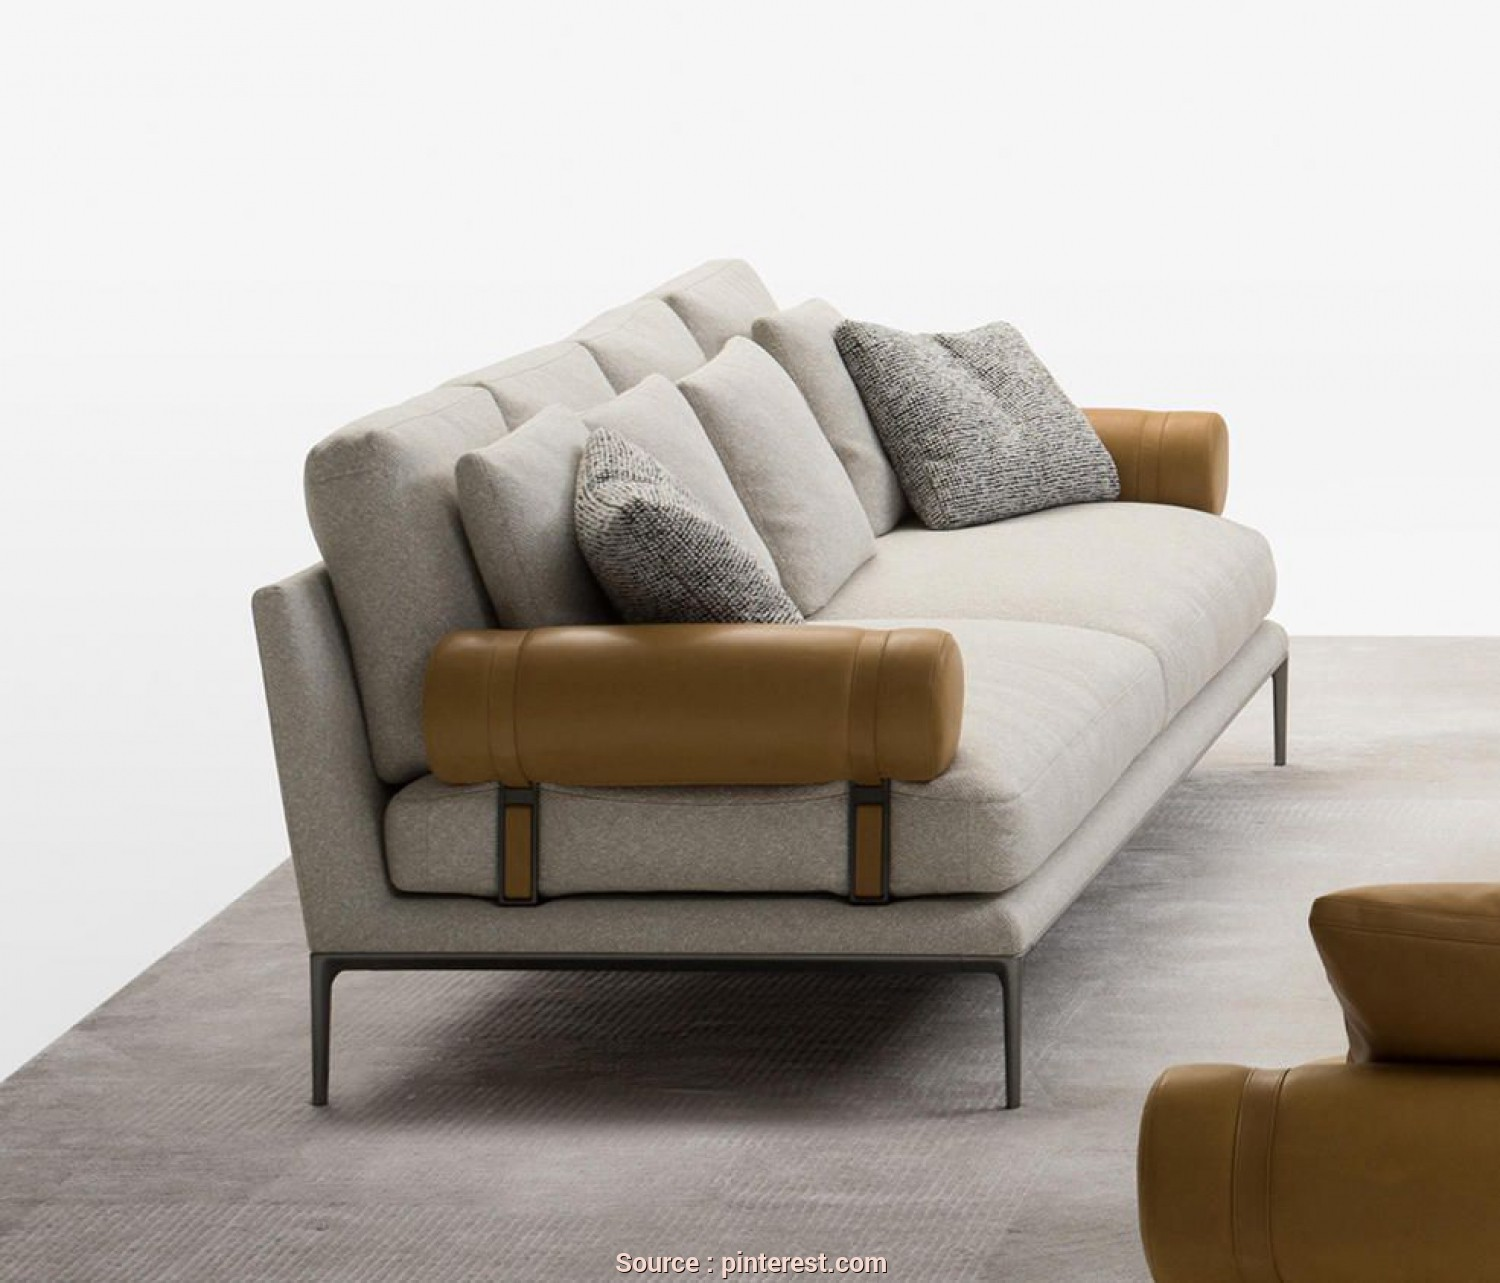 Subito.It Divani B&B, Superiore B&B ATOLL, Designer Sofas From, Italia, All Information, High-Resolution Images, CADs, Catalogues, Contact Information, Find